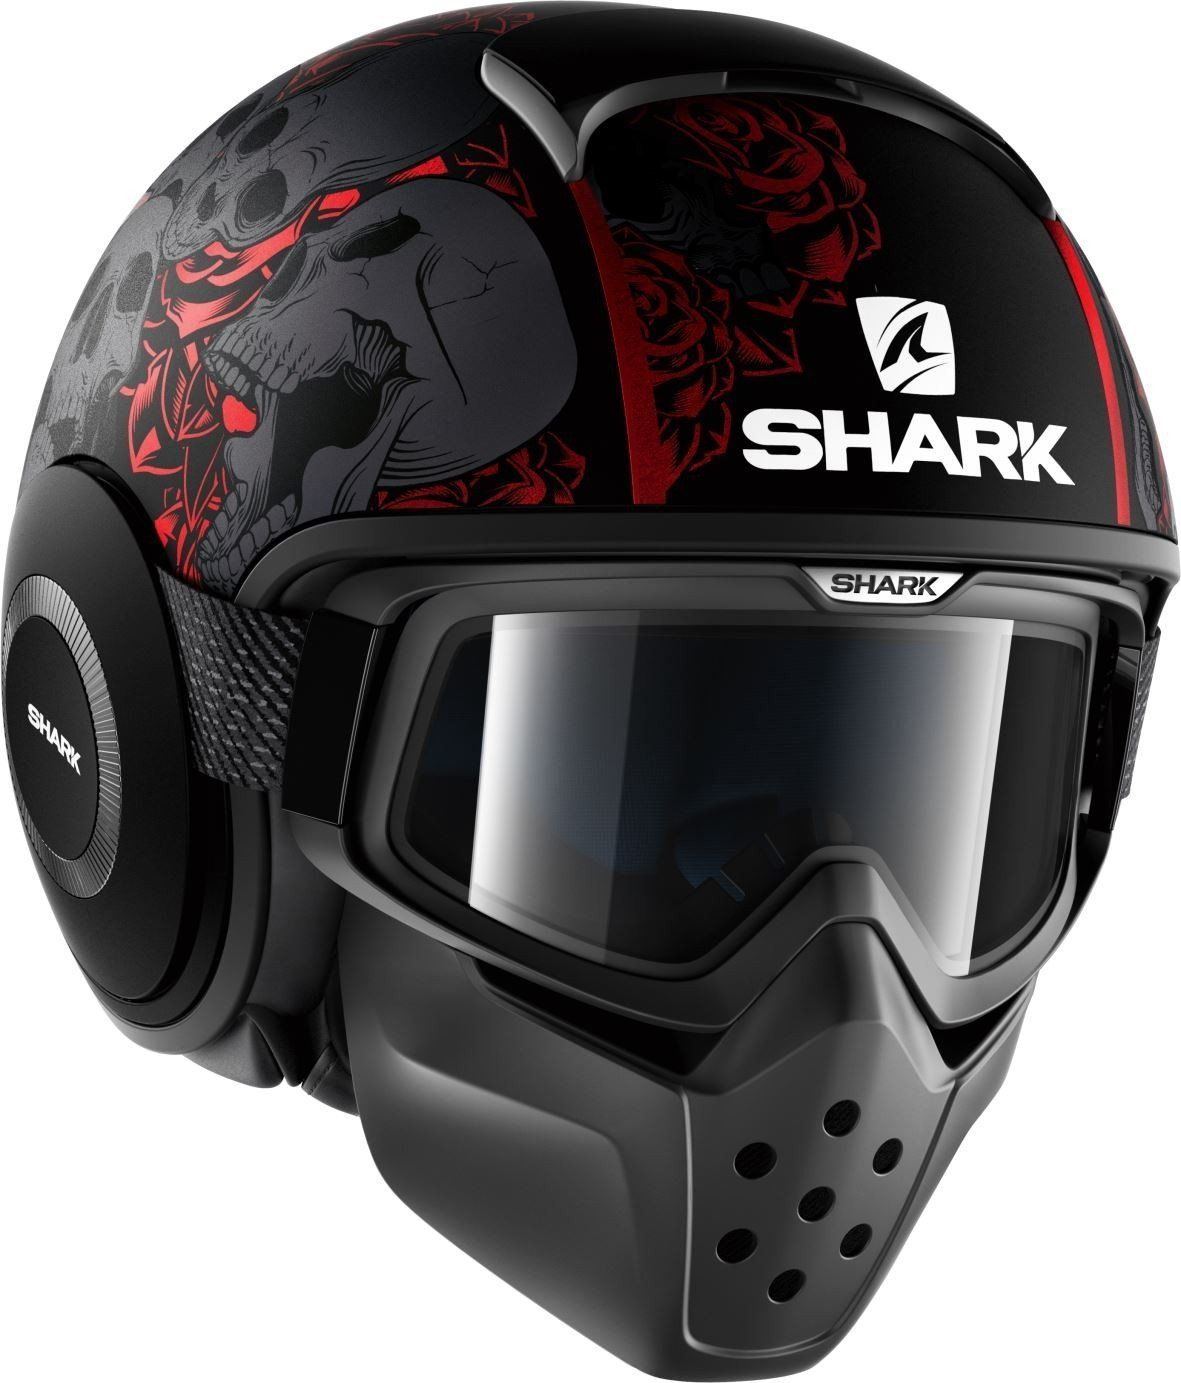 2100be59a15f2 Shark Raw Helmet Review- A hybrid helmet